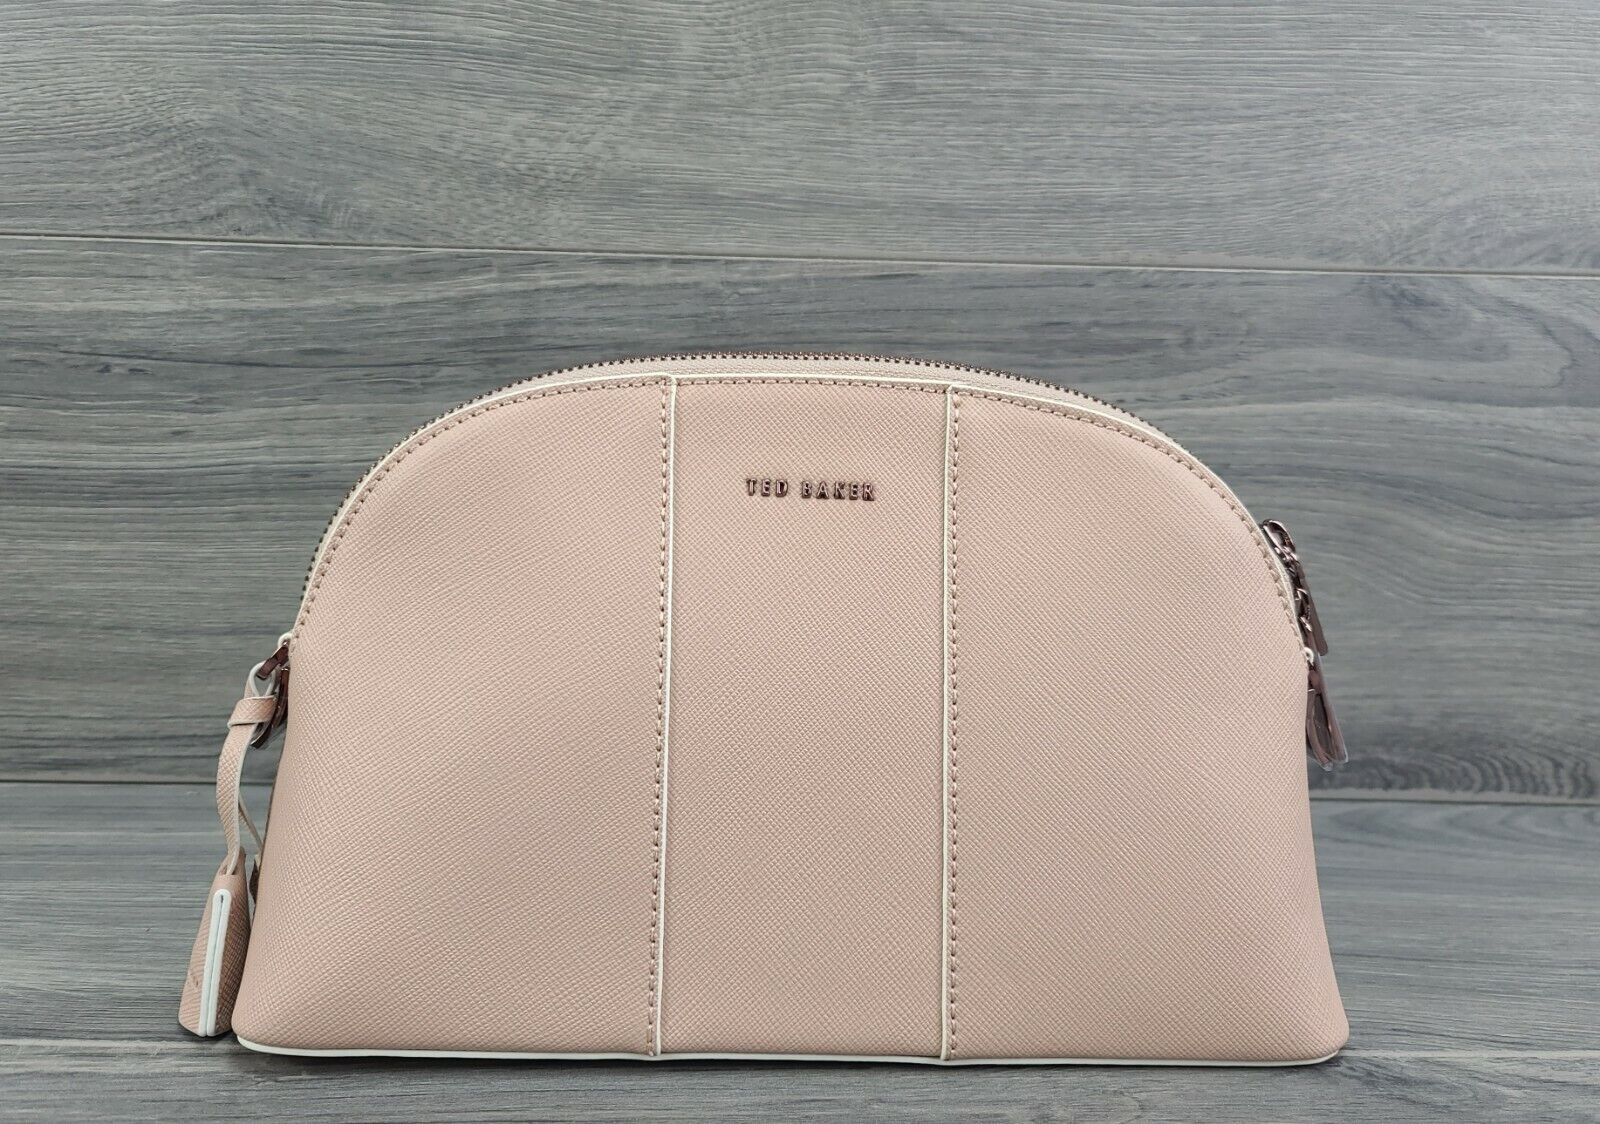 Ted Baker Crossbody Small Crosshatch Leather Barbrie Dome Handbag (Taupe)